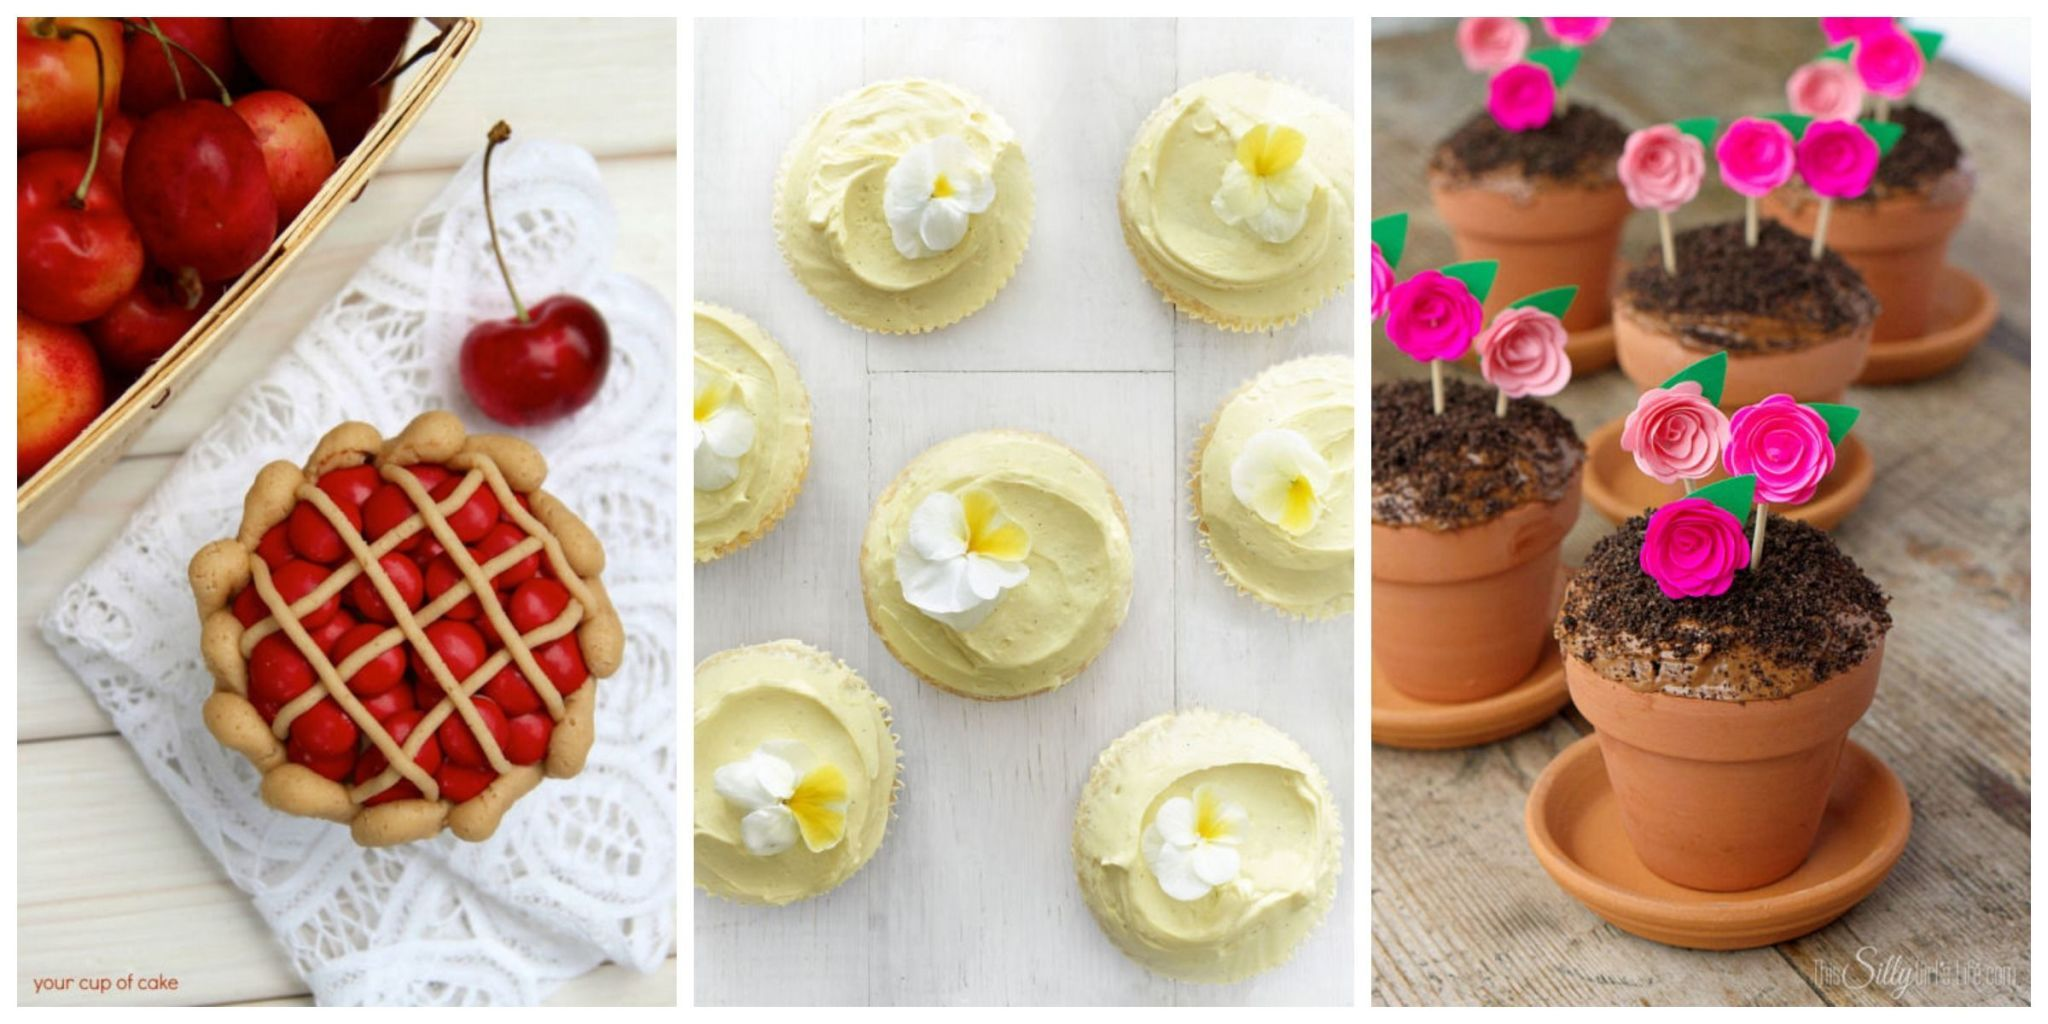 Make dazzling homemade cupcakes for any occasion with our delicious recipes and simple decorating tips. Plus get our best ever cake recipes! & 30 Best Cupcake Decorating Ideas - Easy Recipes for Homemade Cupcakes